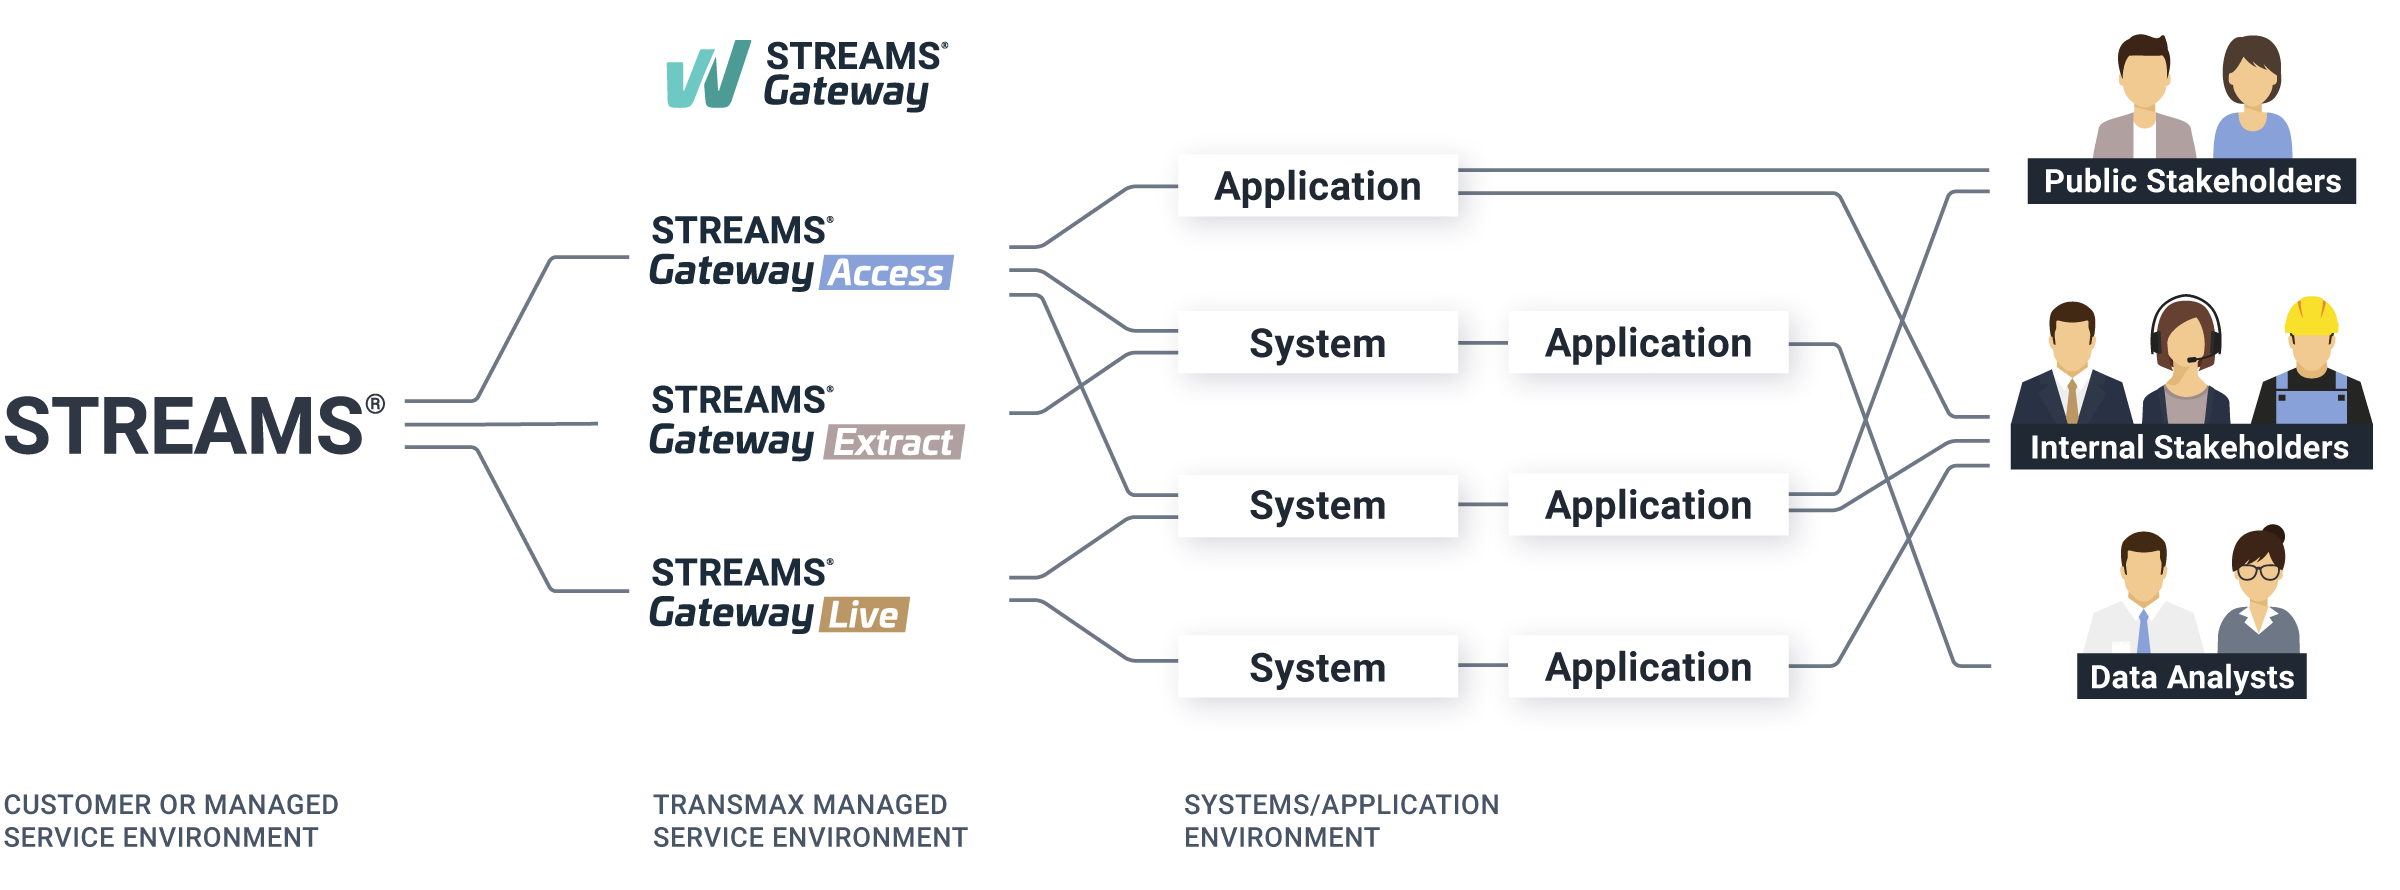 Overview of STREAMS Gateway and how it can be used to deliver services to end users.